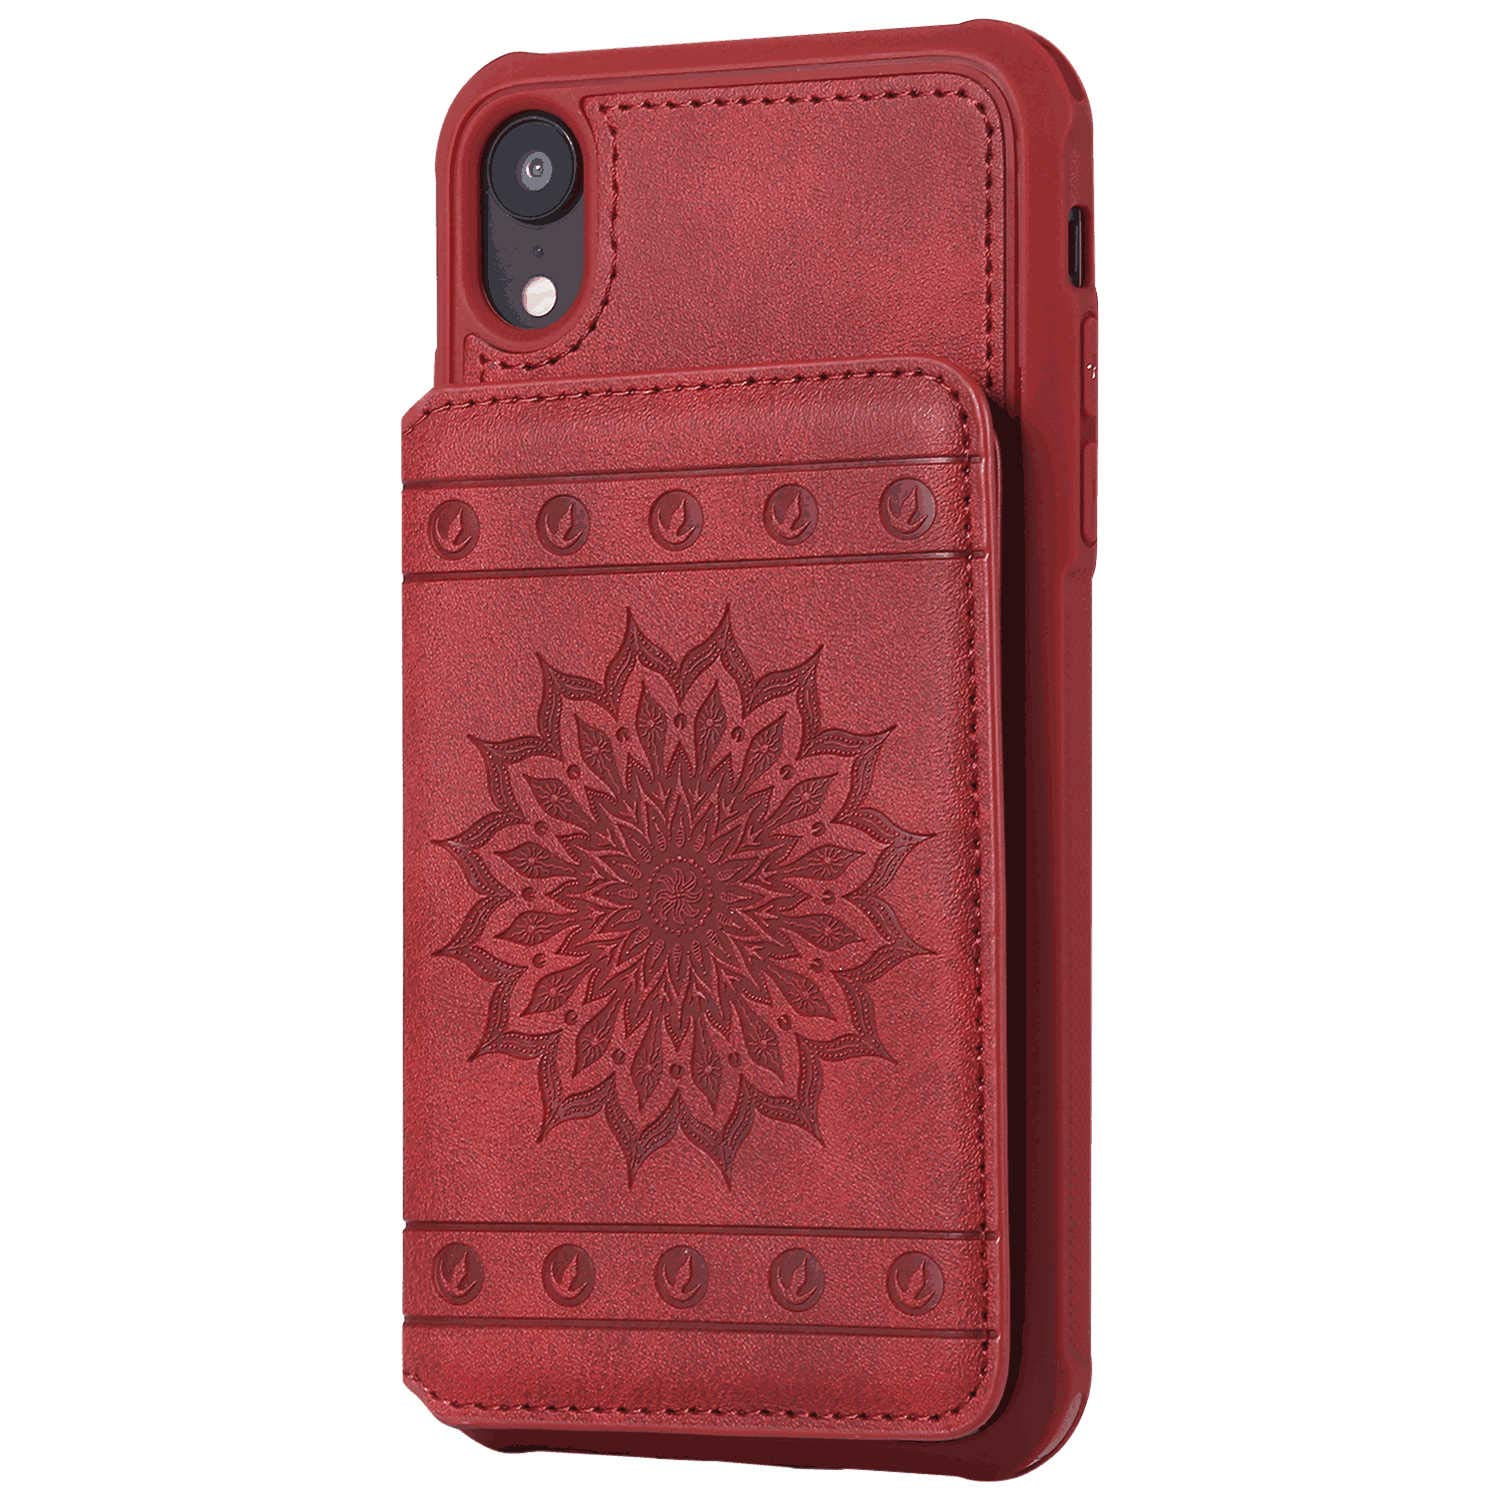 Cover for Leather Kickstand Card Holders Extra-Durable Business Mobile Phone Cover Flip Cover Samsung Galaxy S8 Flip Case